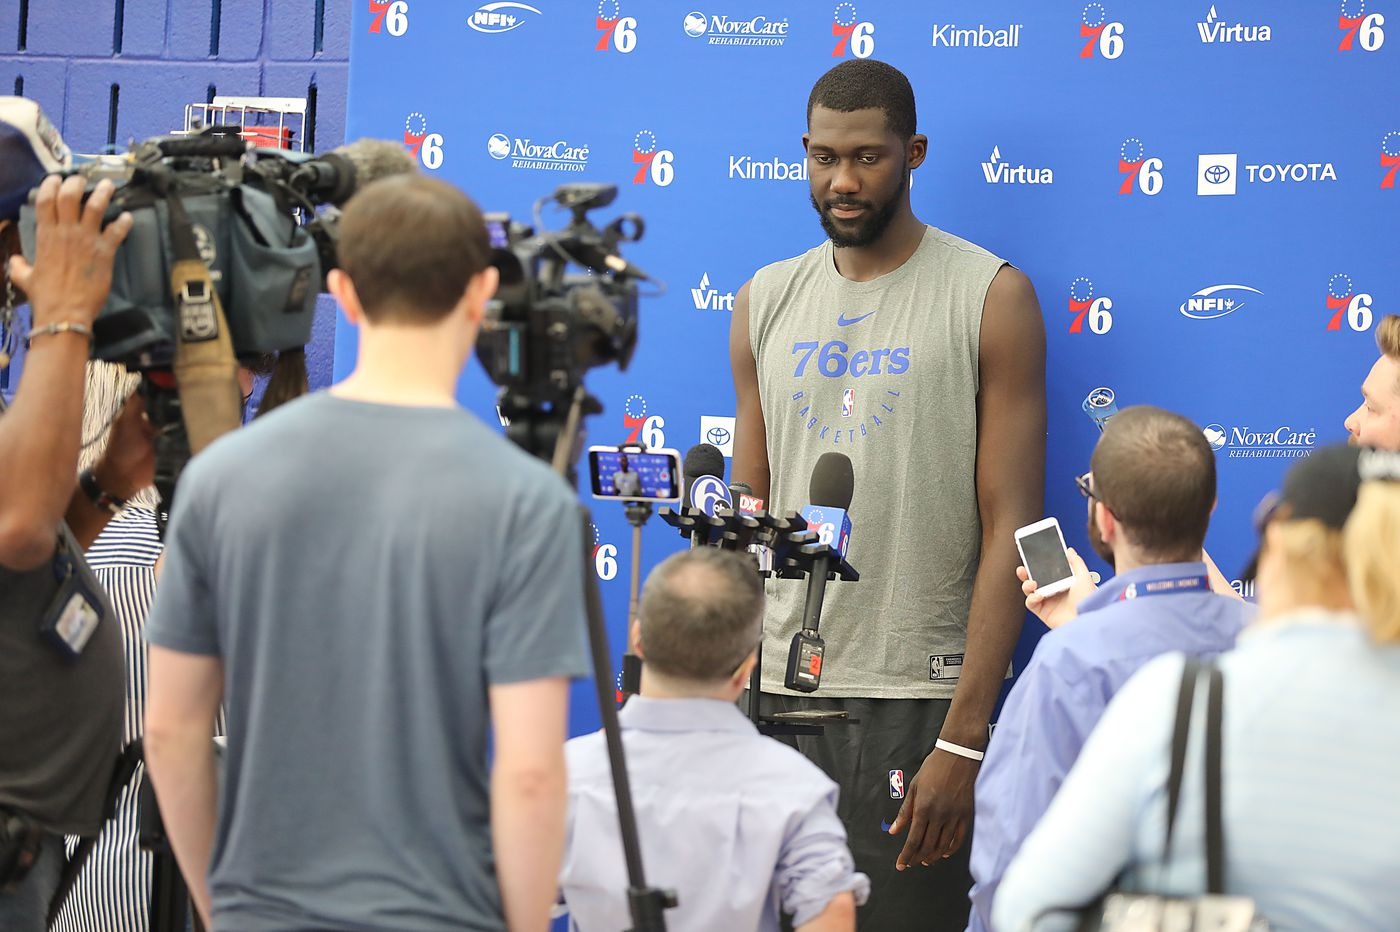 7-foot-4 Christ Koumadje stands out in Sixers predraft workout